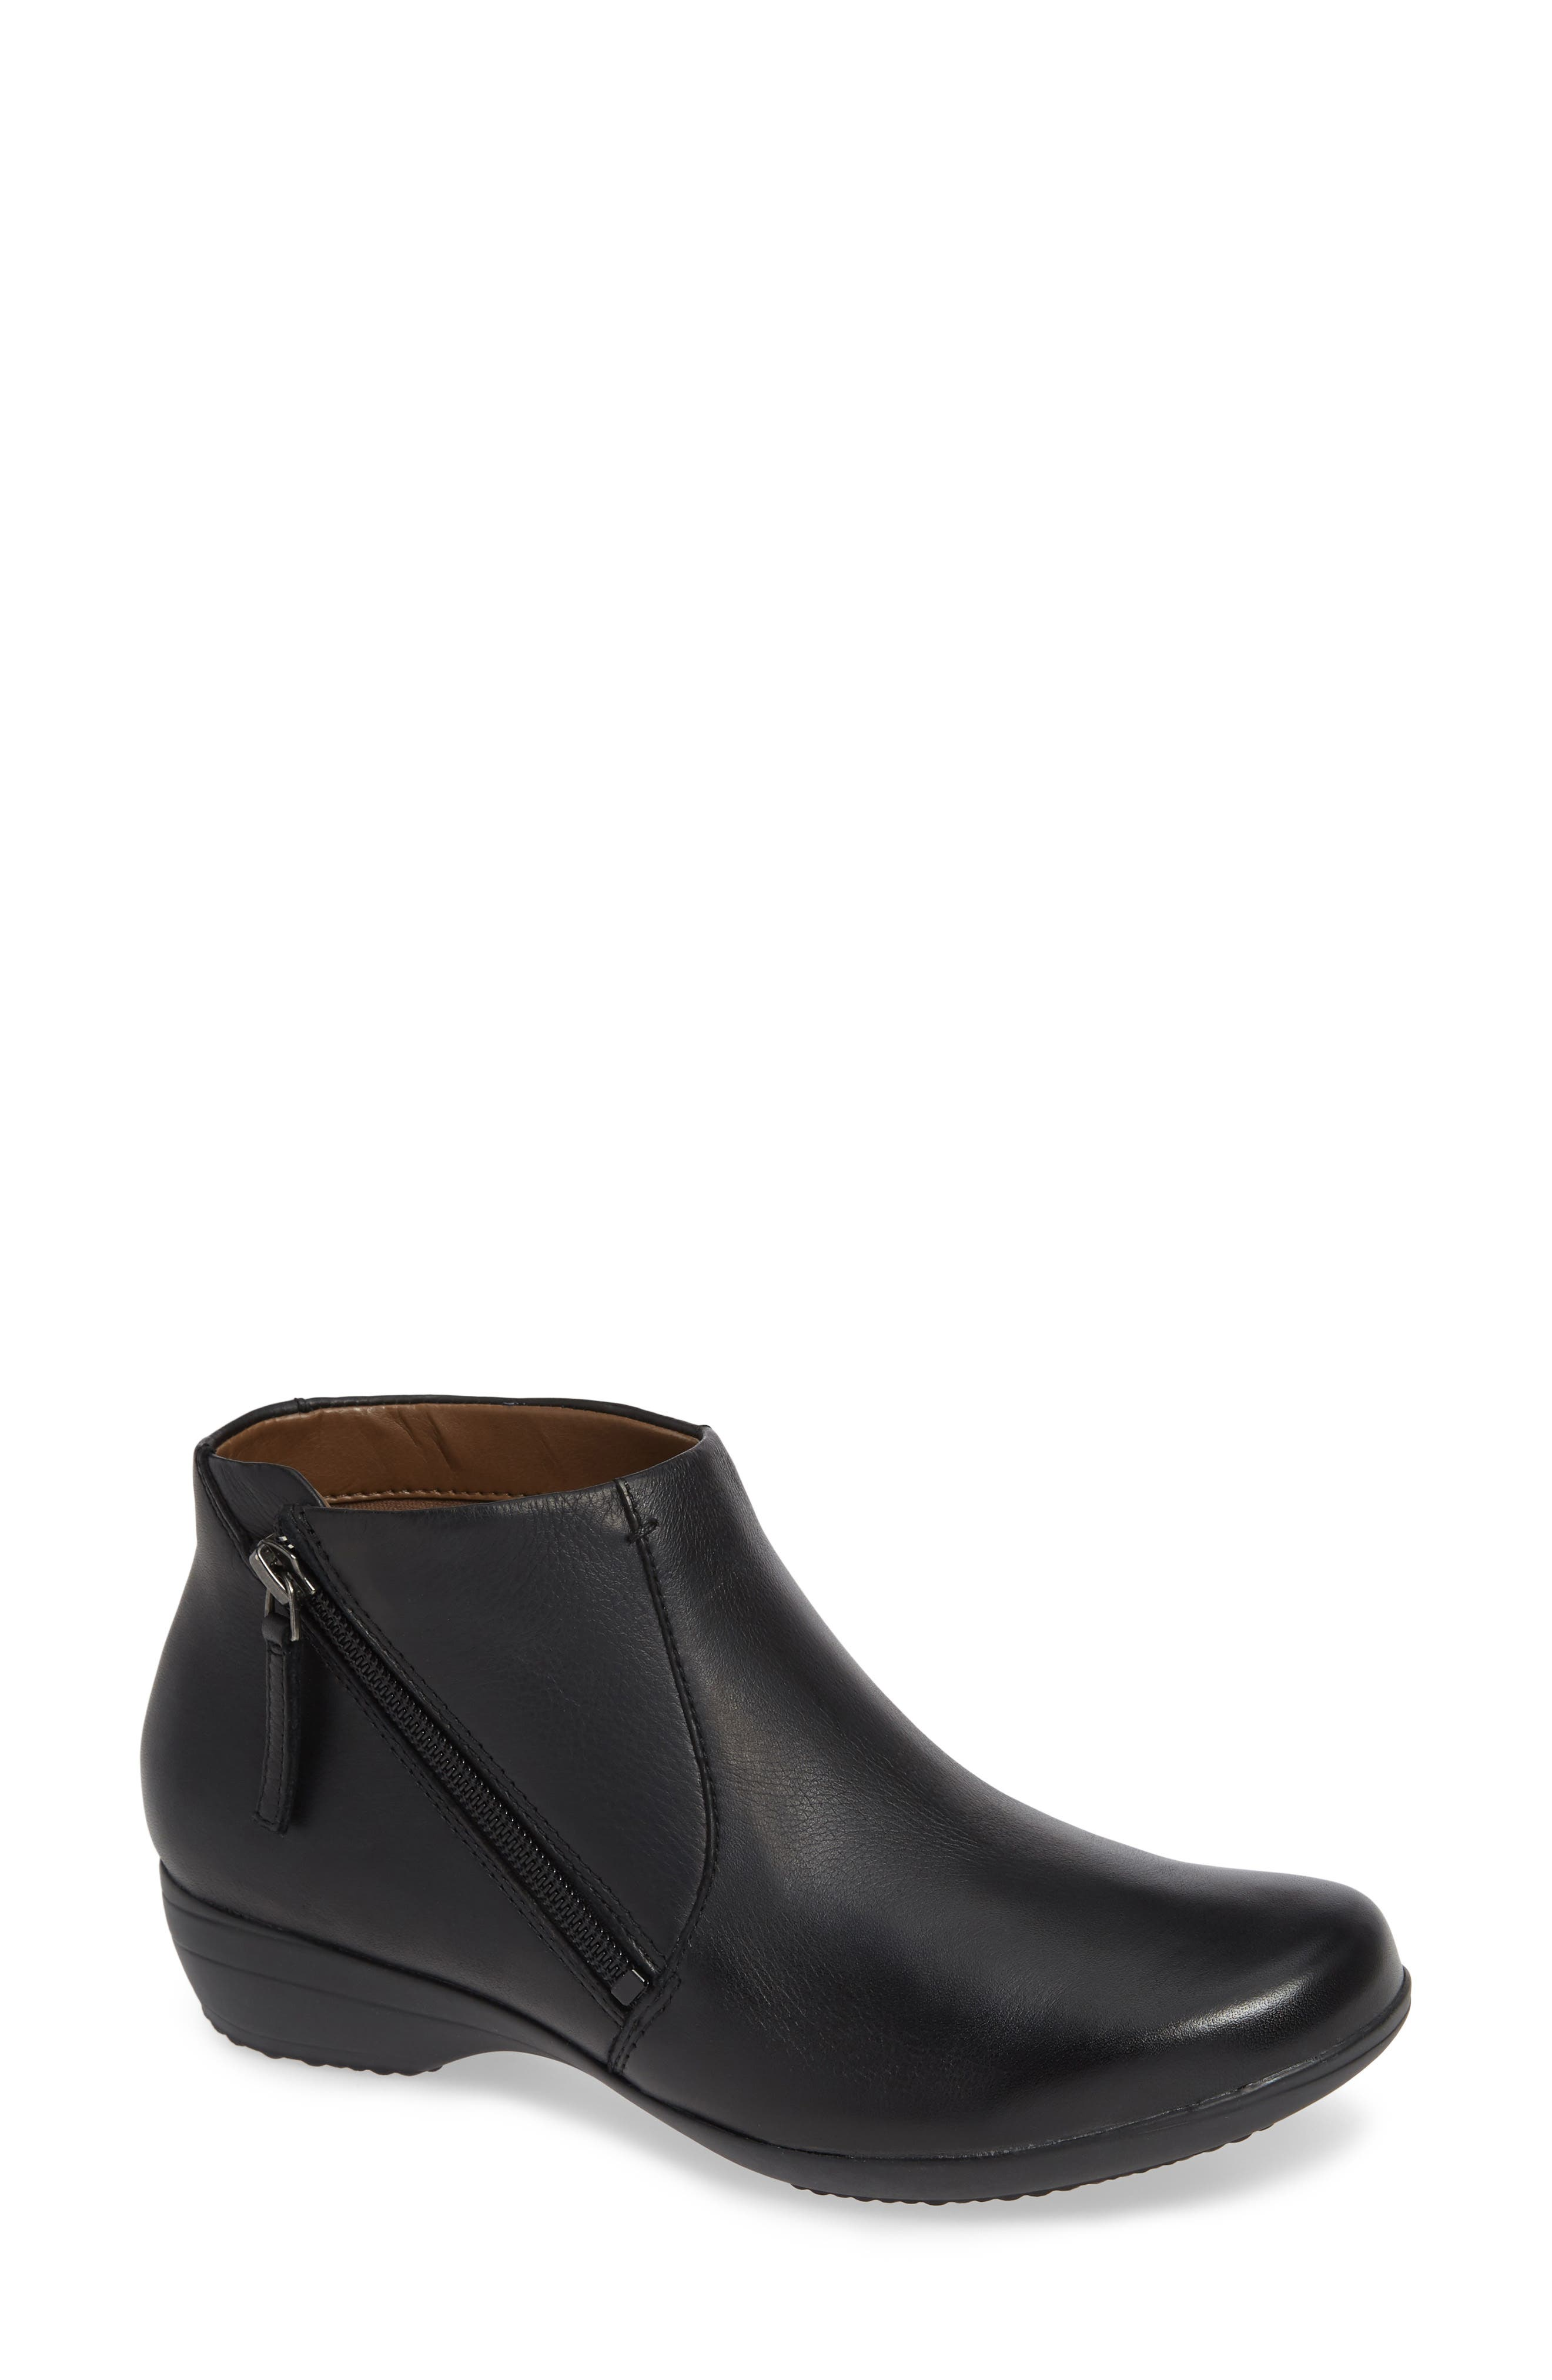 Fifi Bootie,                         Main,                         color, BLACK MILLED LEATHER